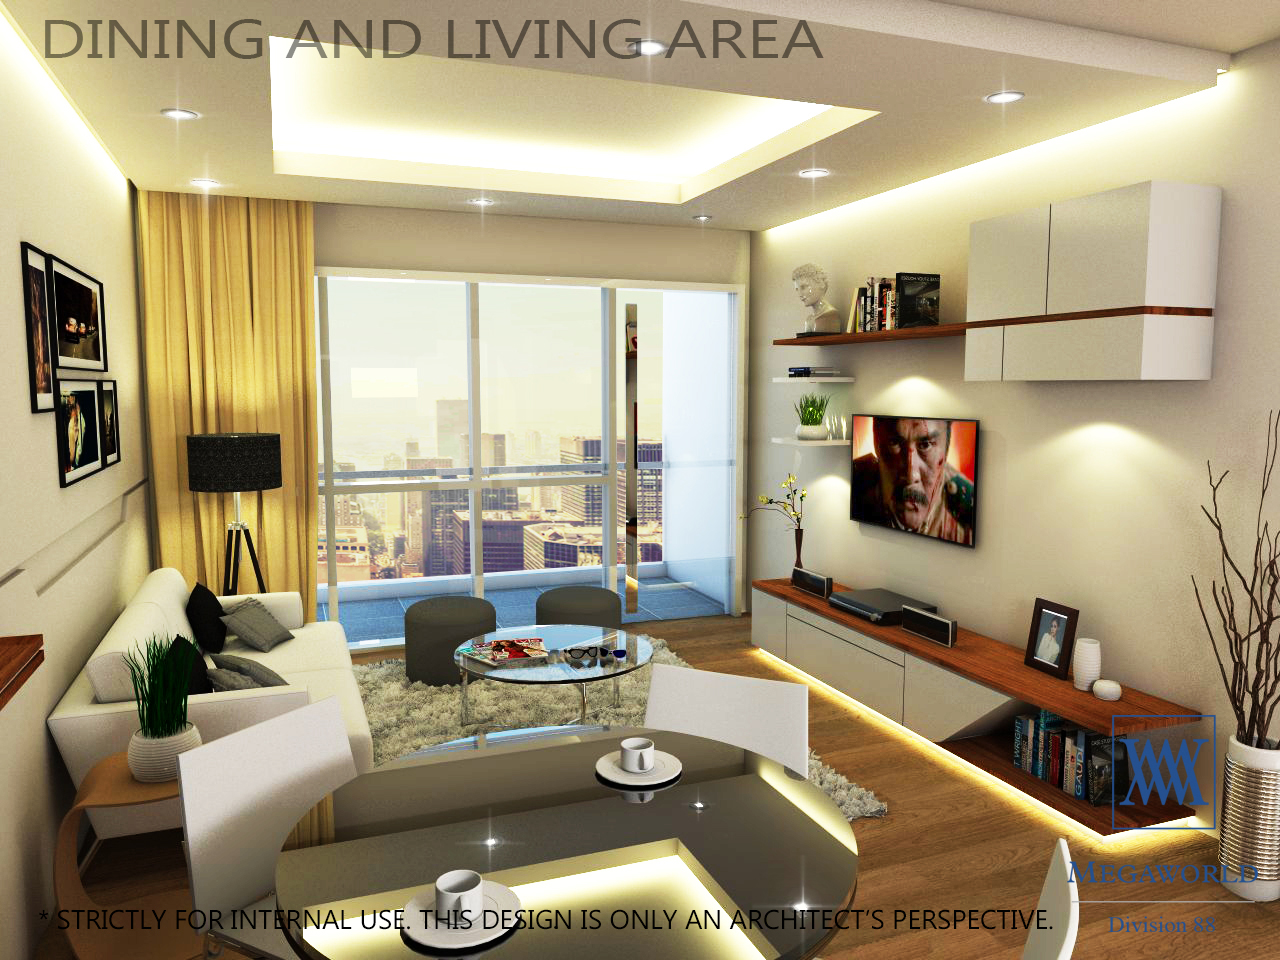 DINING-AND LIVING-AREA-condos-for-sale-bgc-fort-bonifacio-global-city-taguig